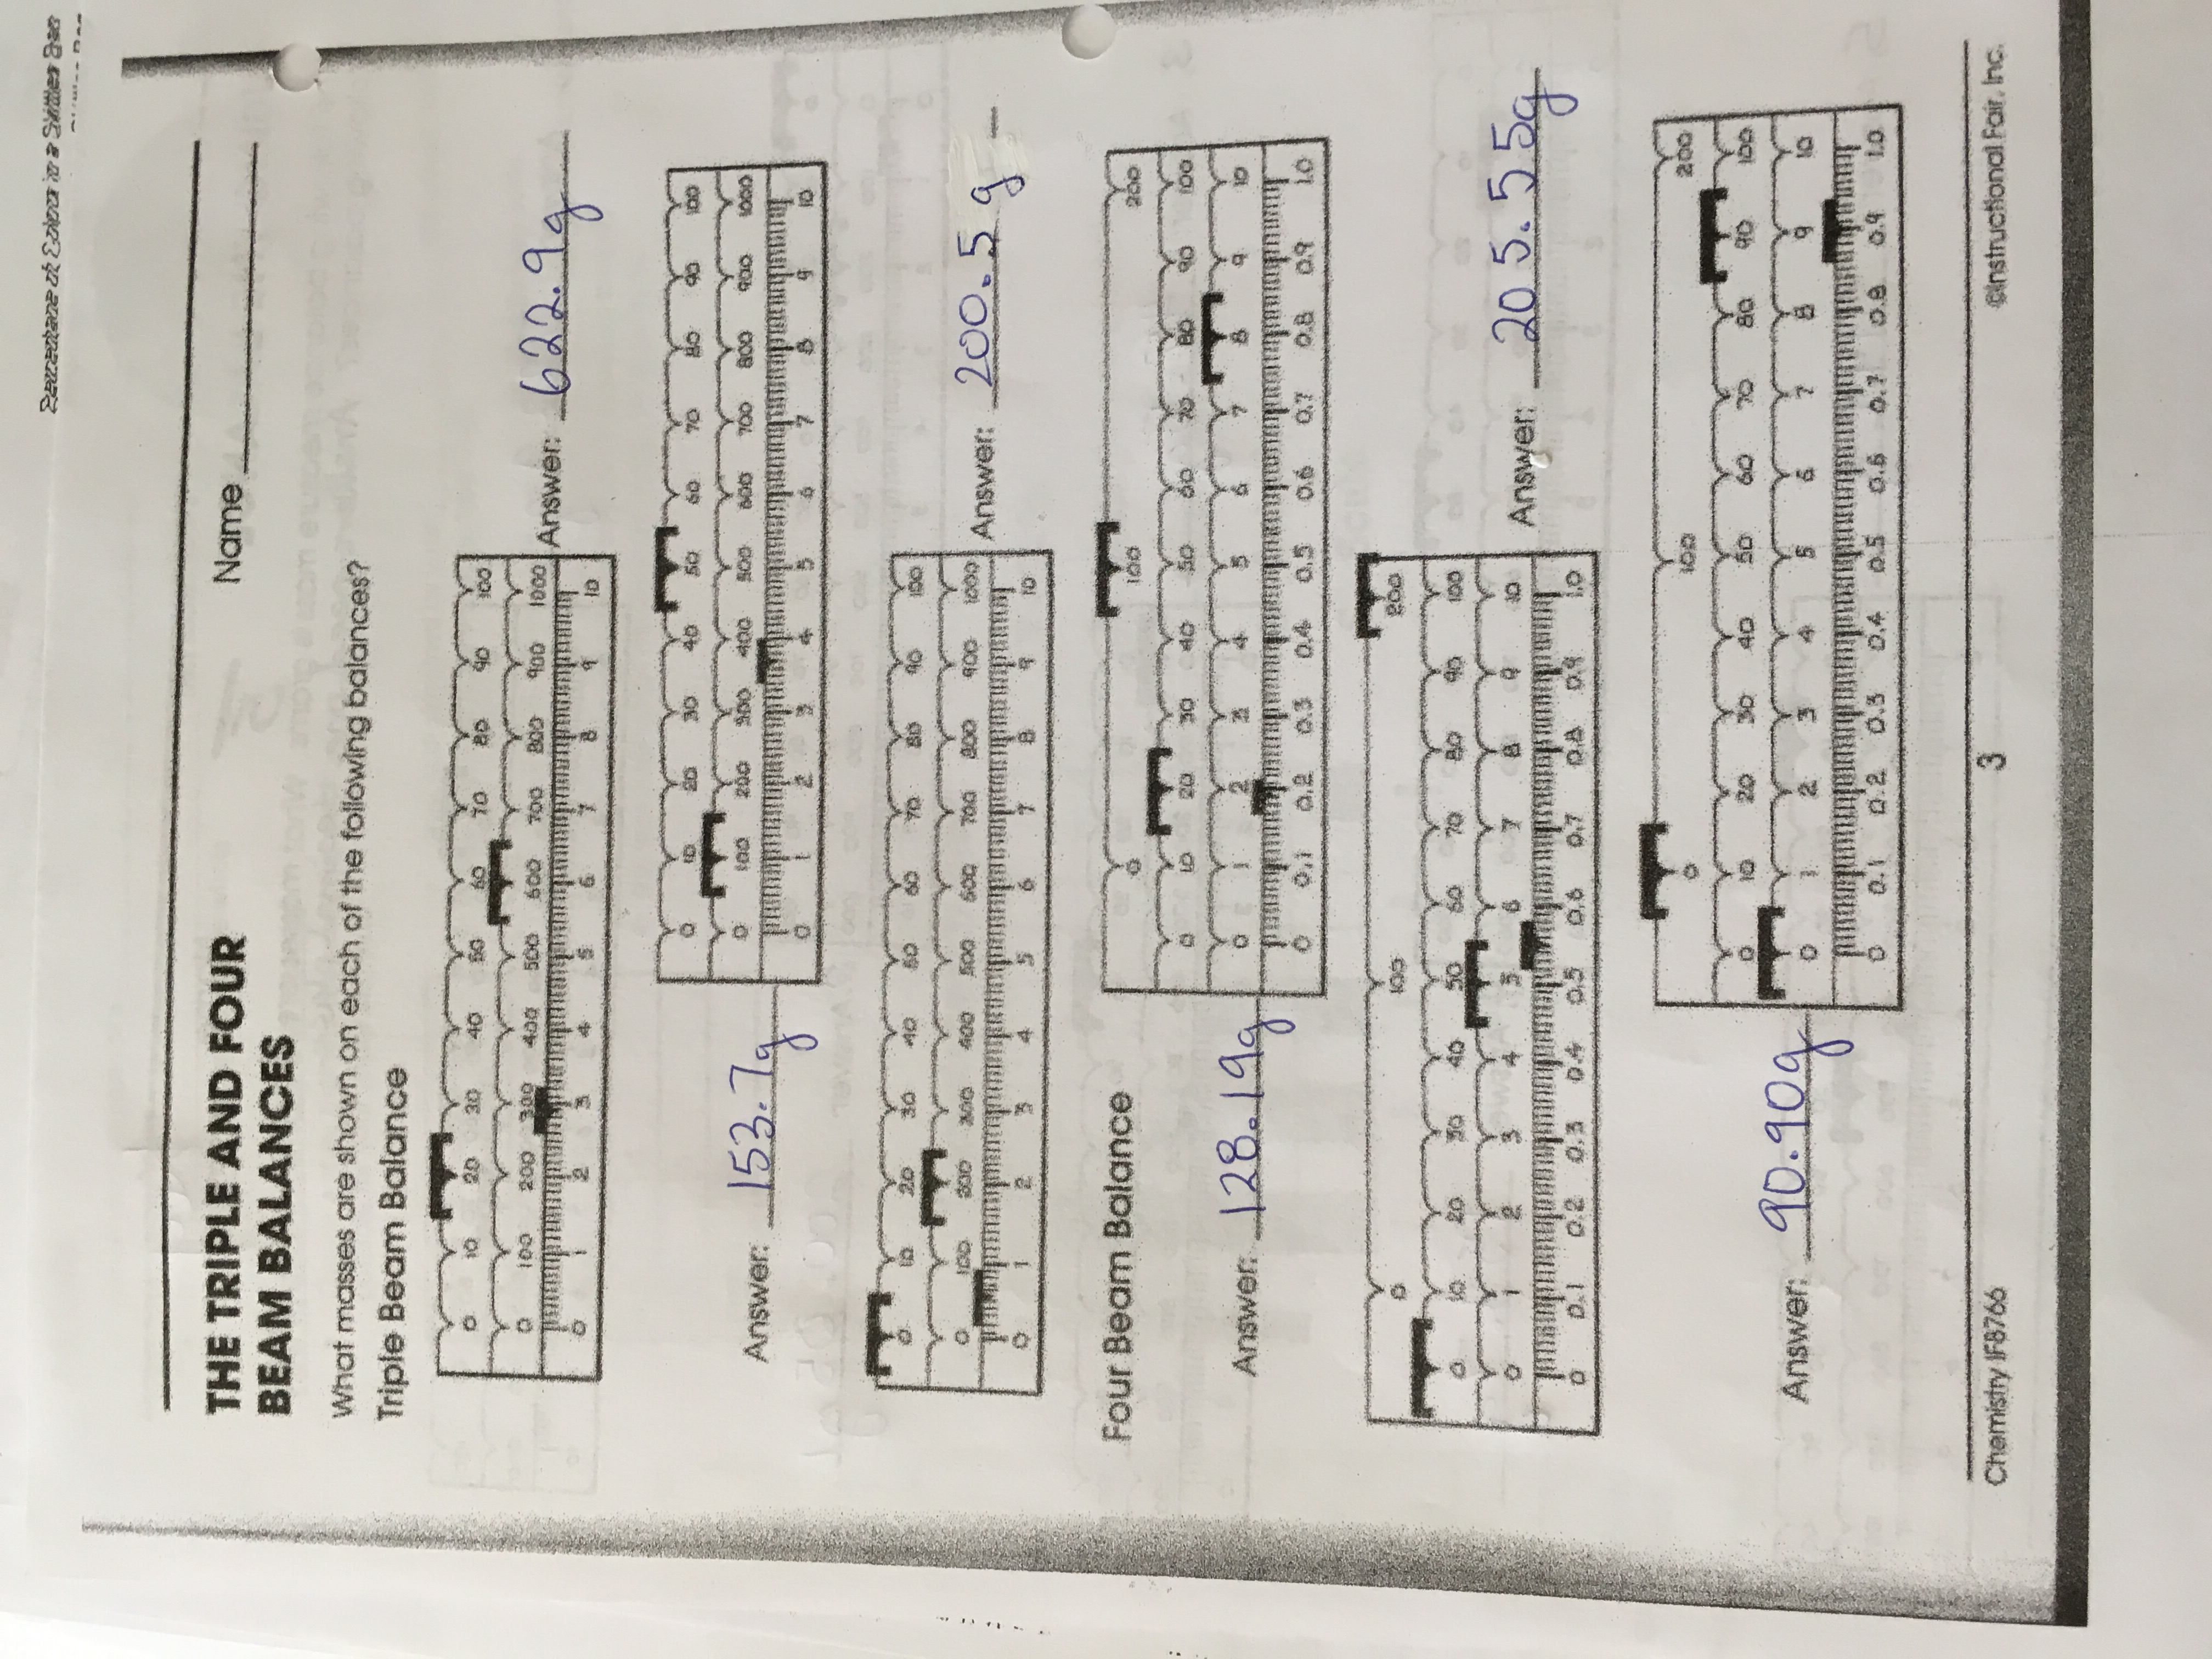 The Triple And Four Beam Balances Worksheet Answers